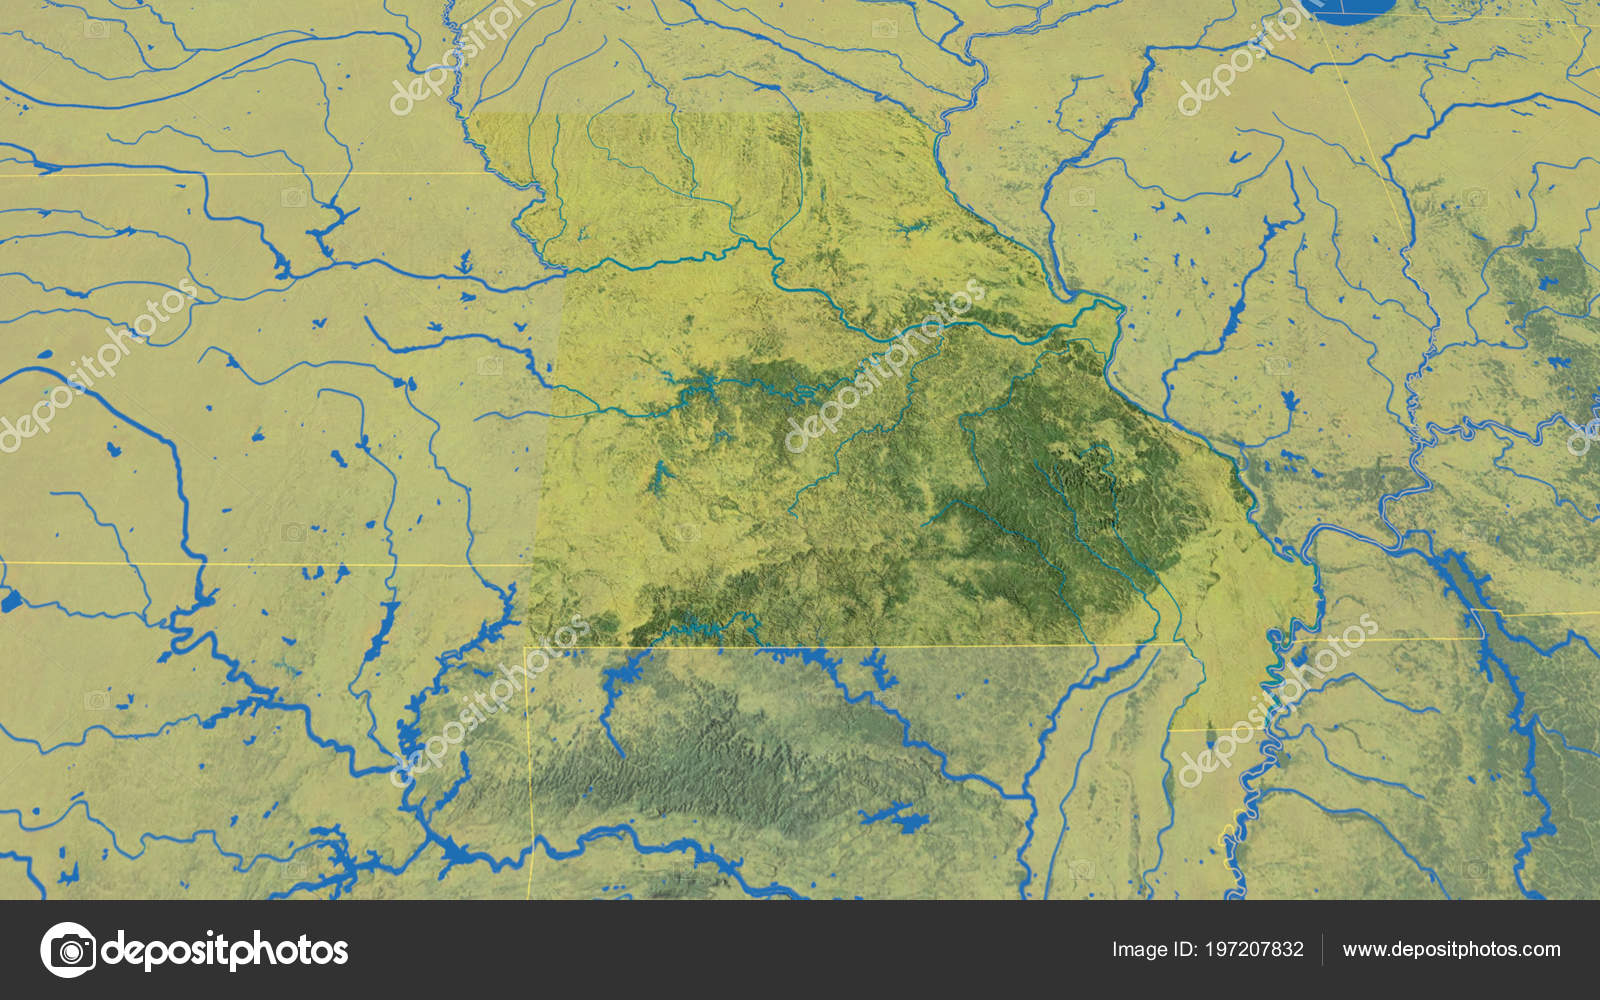 Missouri Region United States Outlined Topographic Map ...